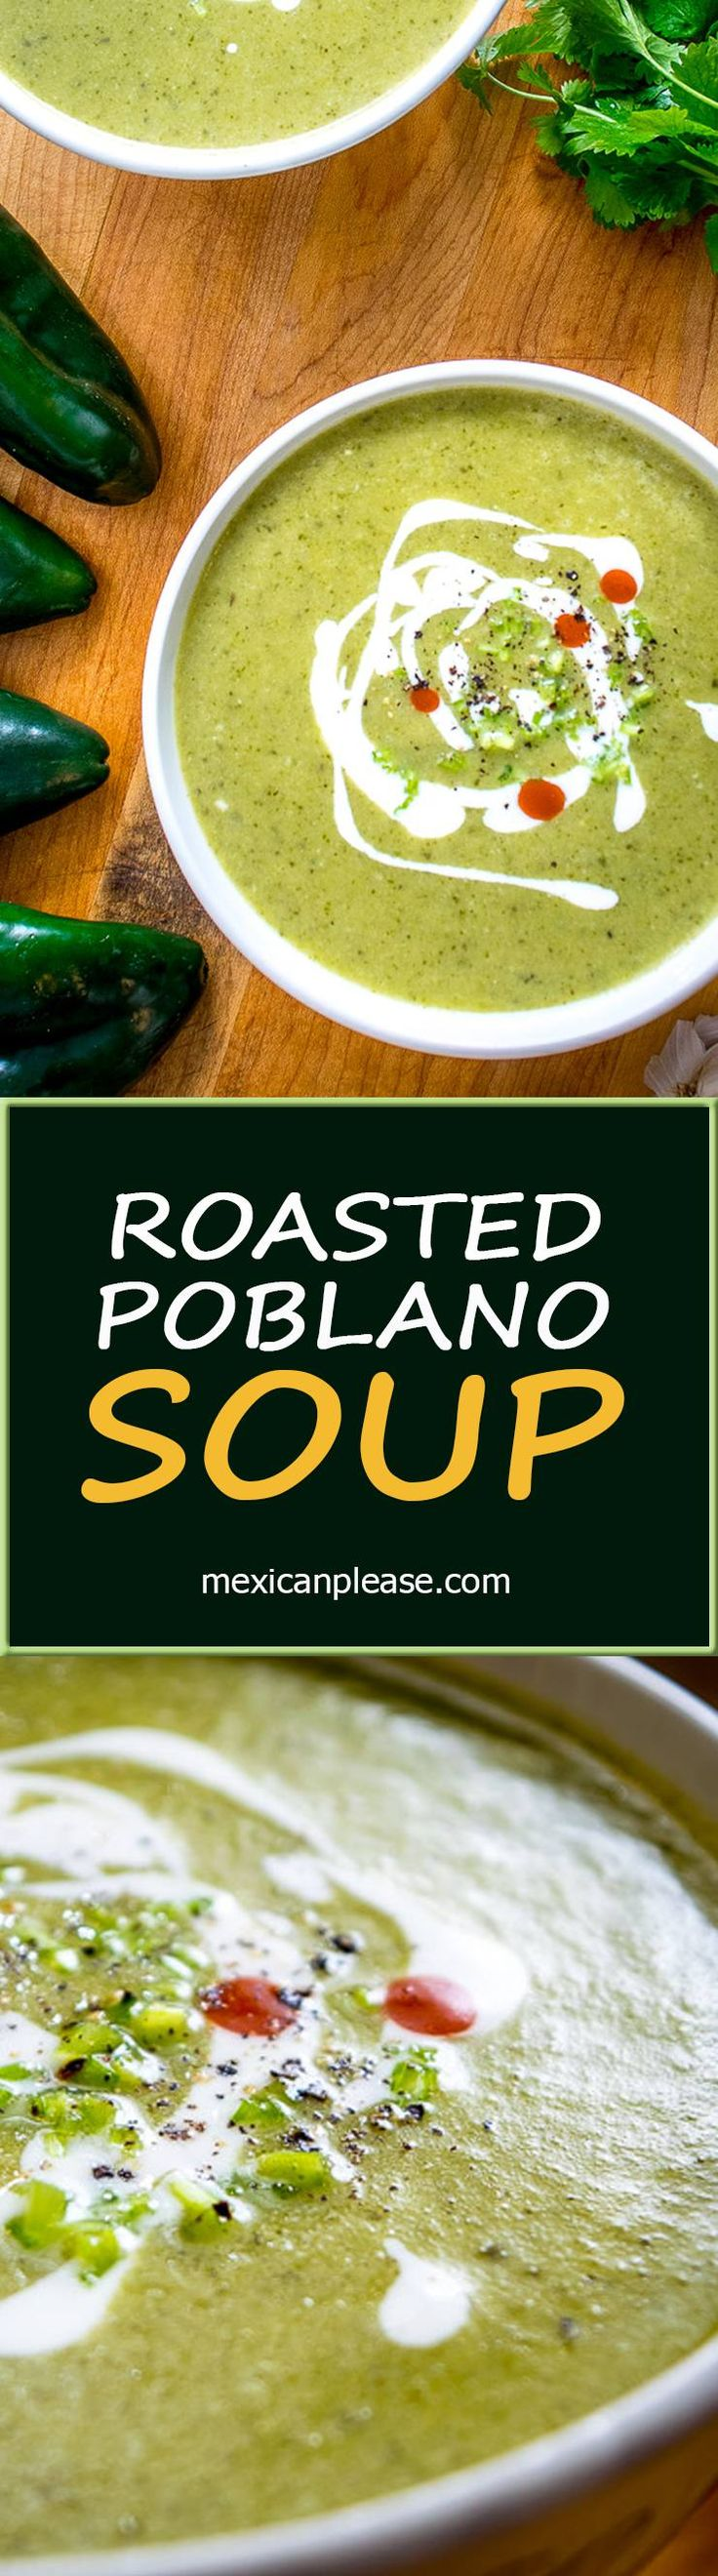 The key to this Roasted Poblano Soup is getting creative with the garnish.  Crema, cilantro stems, and a dash of acidity will turn it into something otherworldly.  So good!  mexicanplease.com